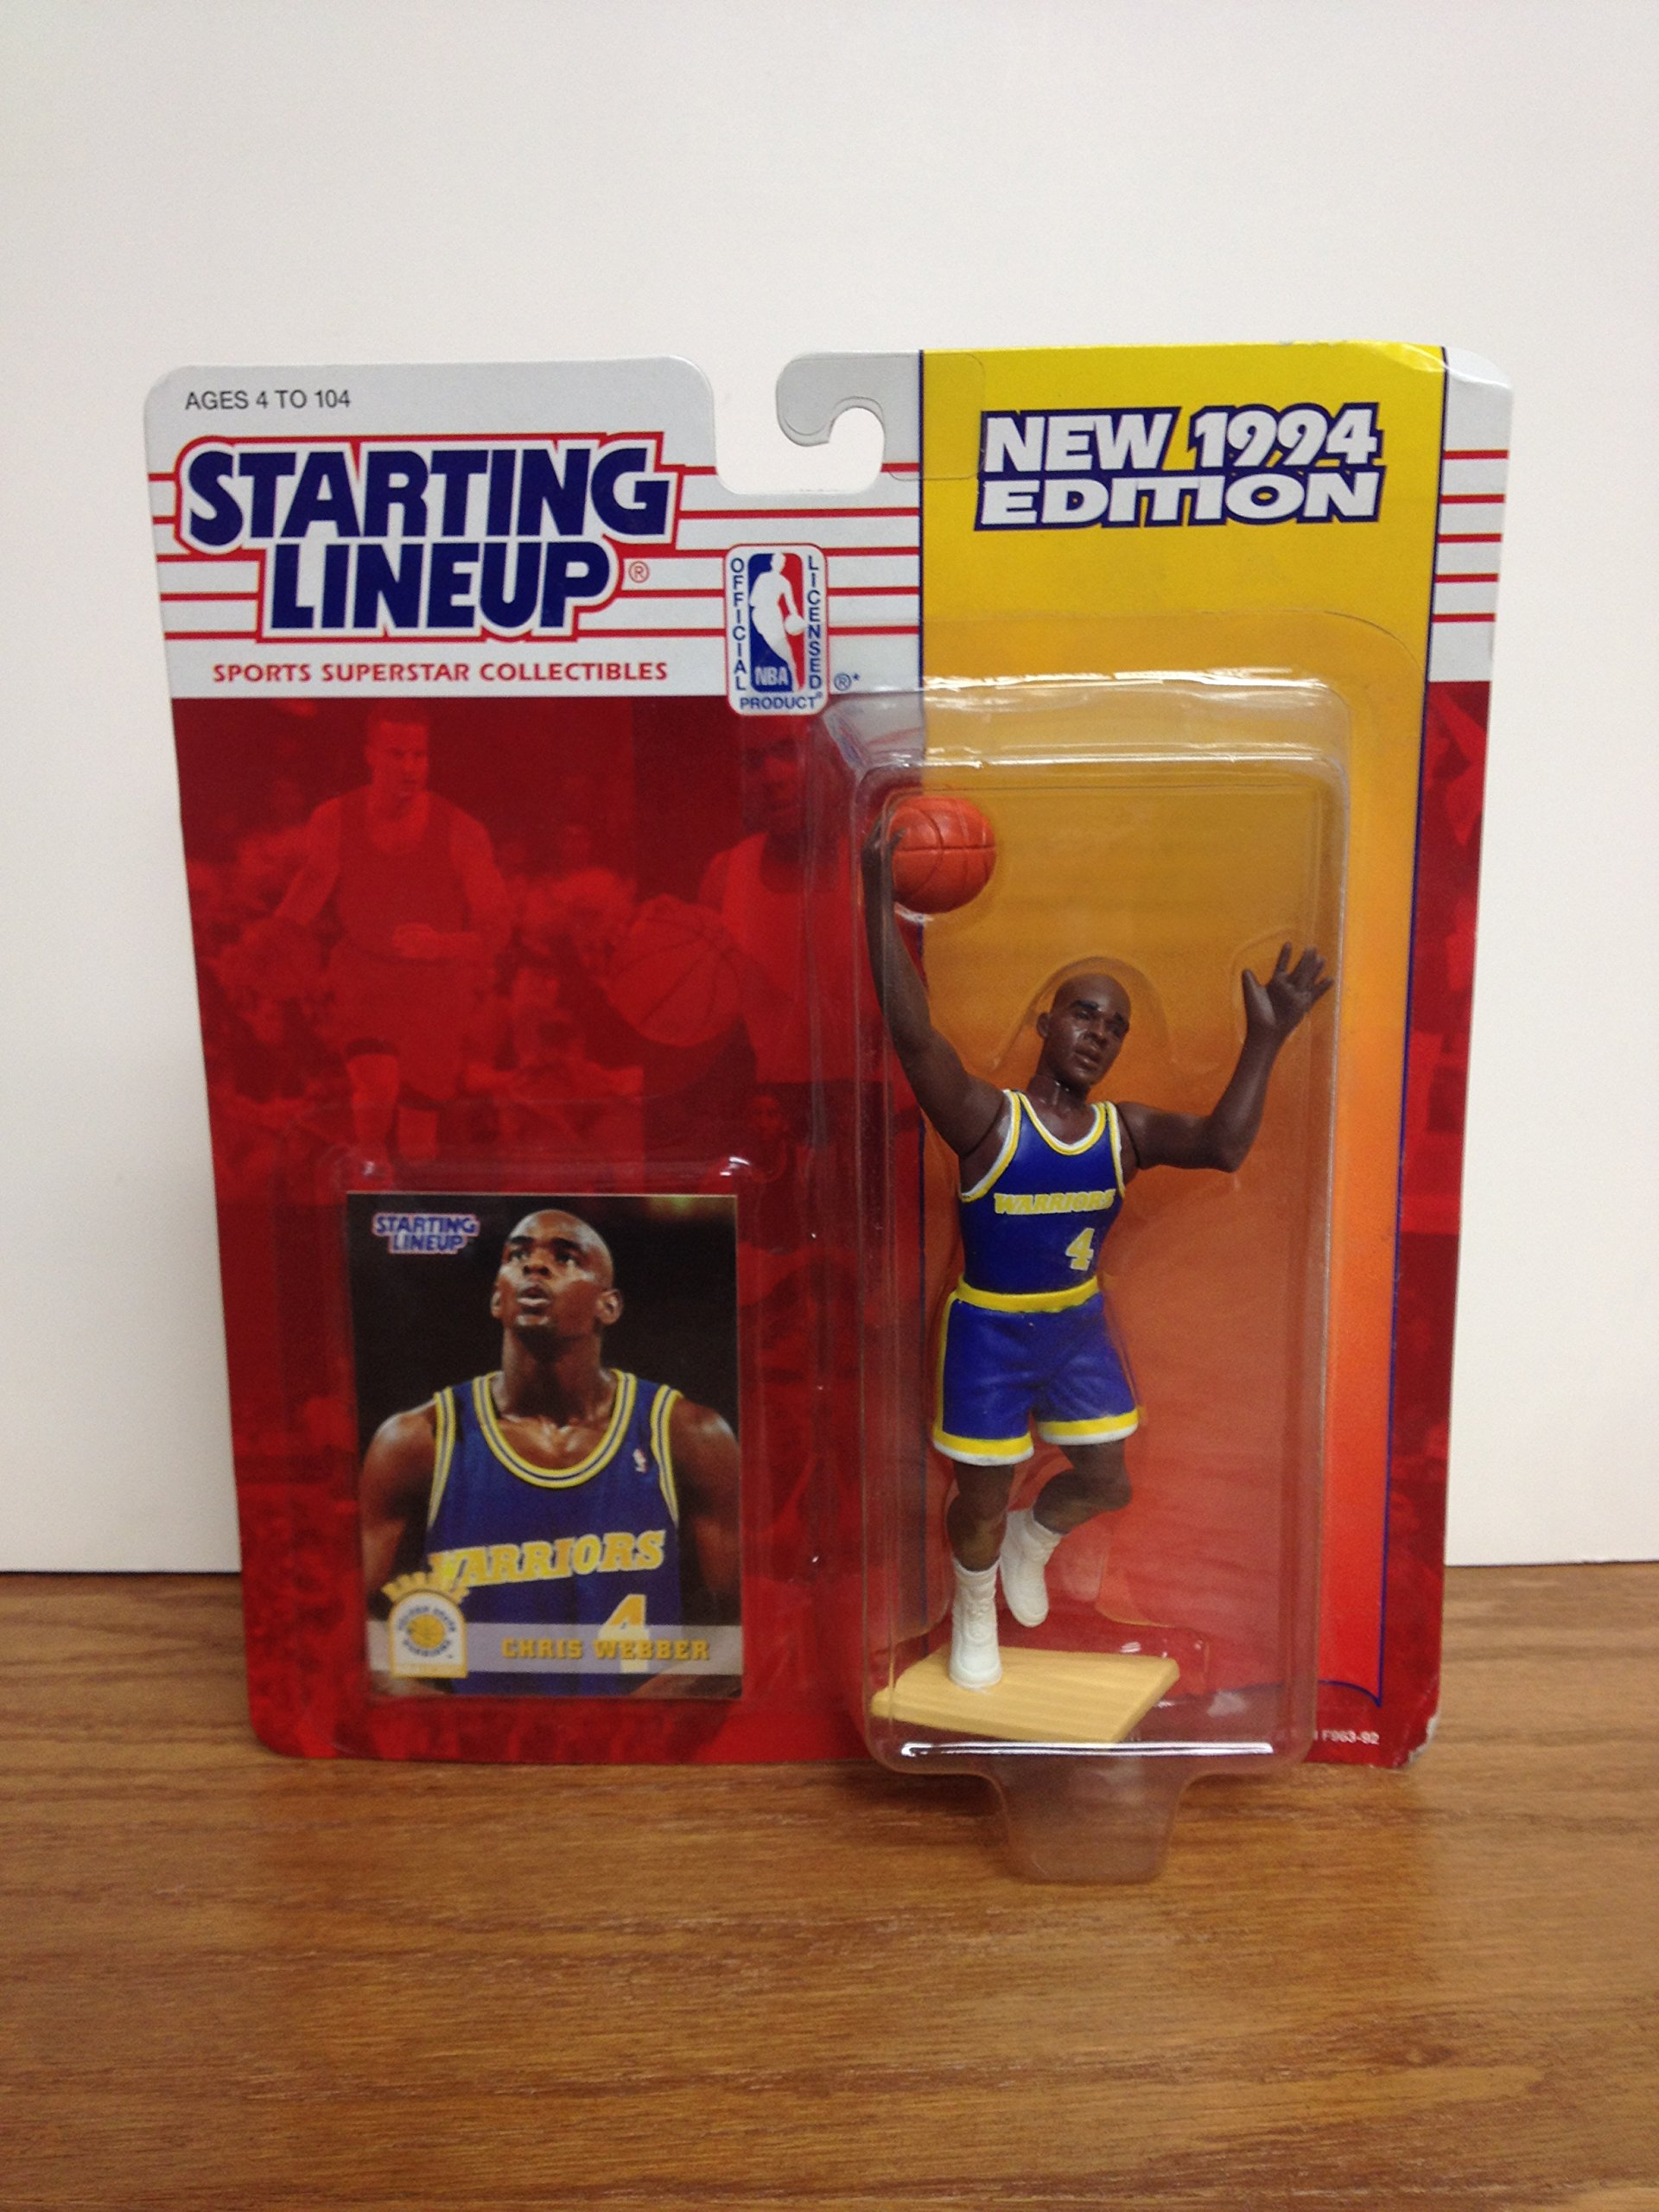 Chris Webber Golden State Warriors ROOKIE Toy Action Figure with Trading Card